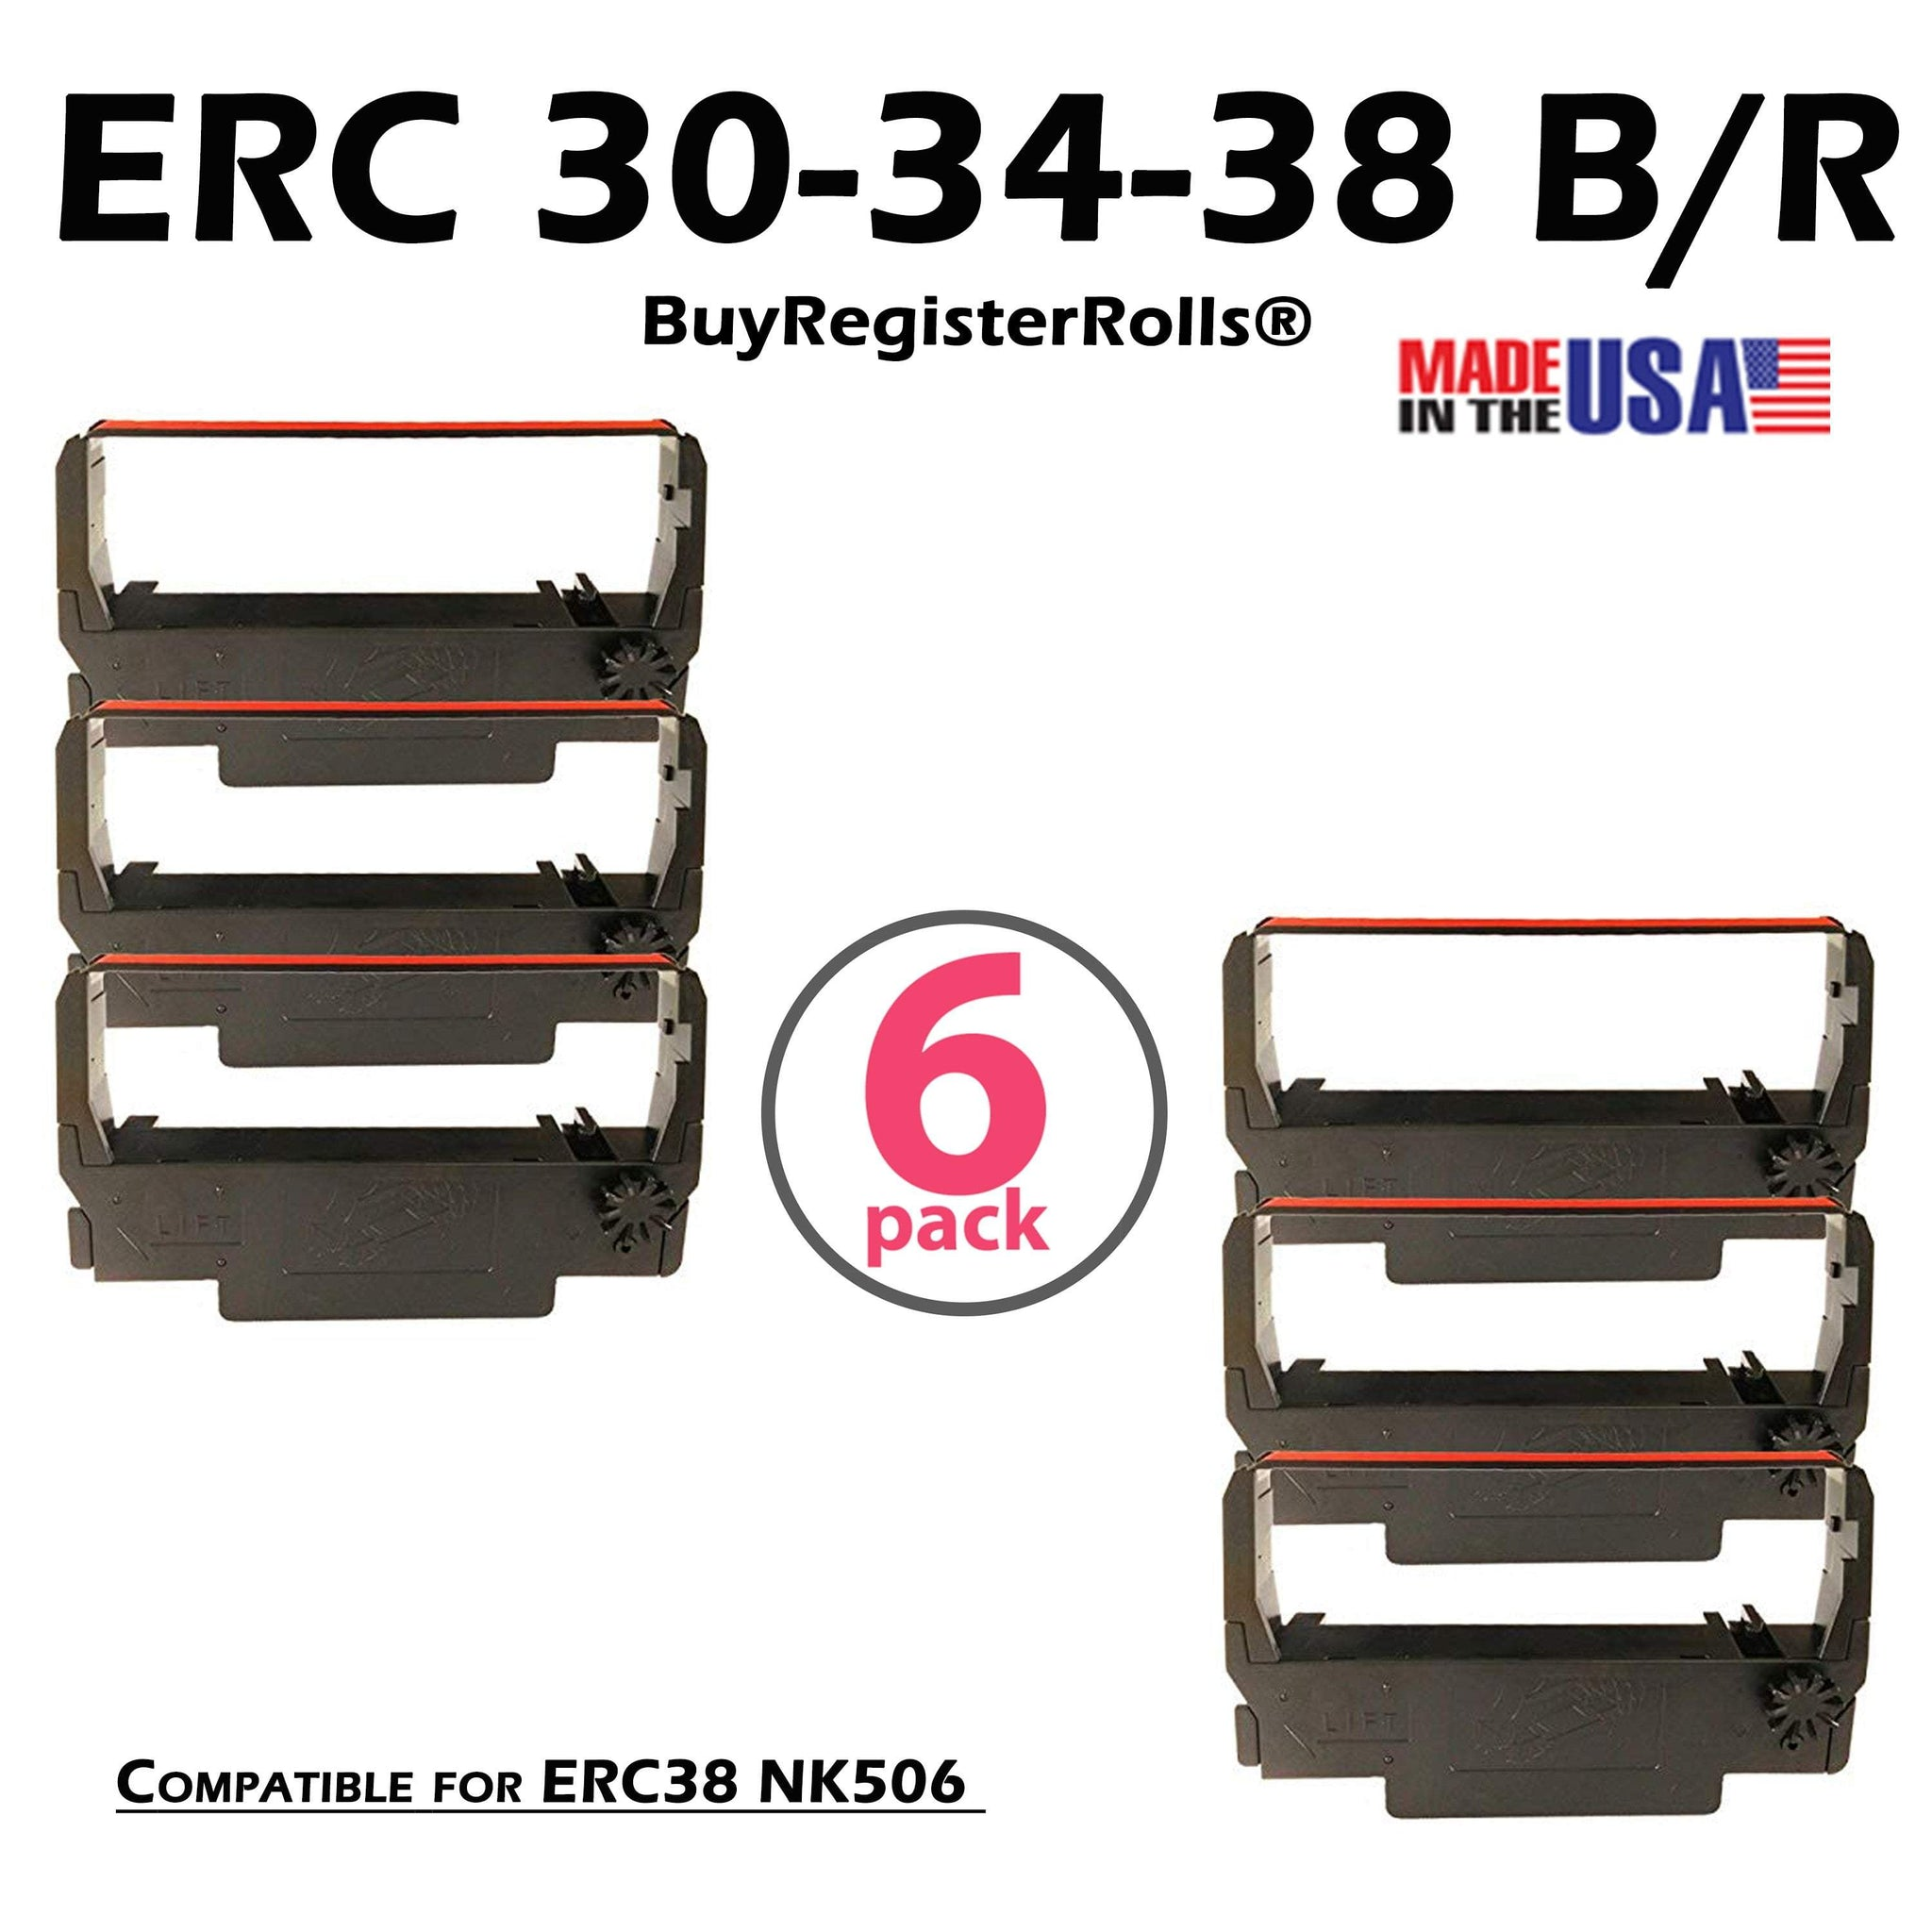 ERC30 ERC-30 ERC 30 34 38 B/R Compatible with Ribbon Cartridge for use in ERC38 NK506 (Black Red)